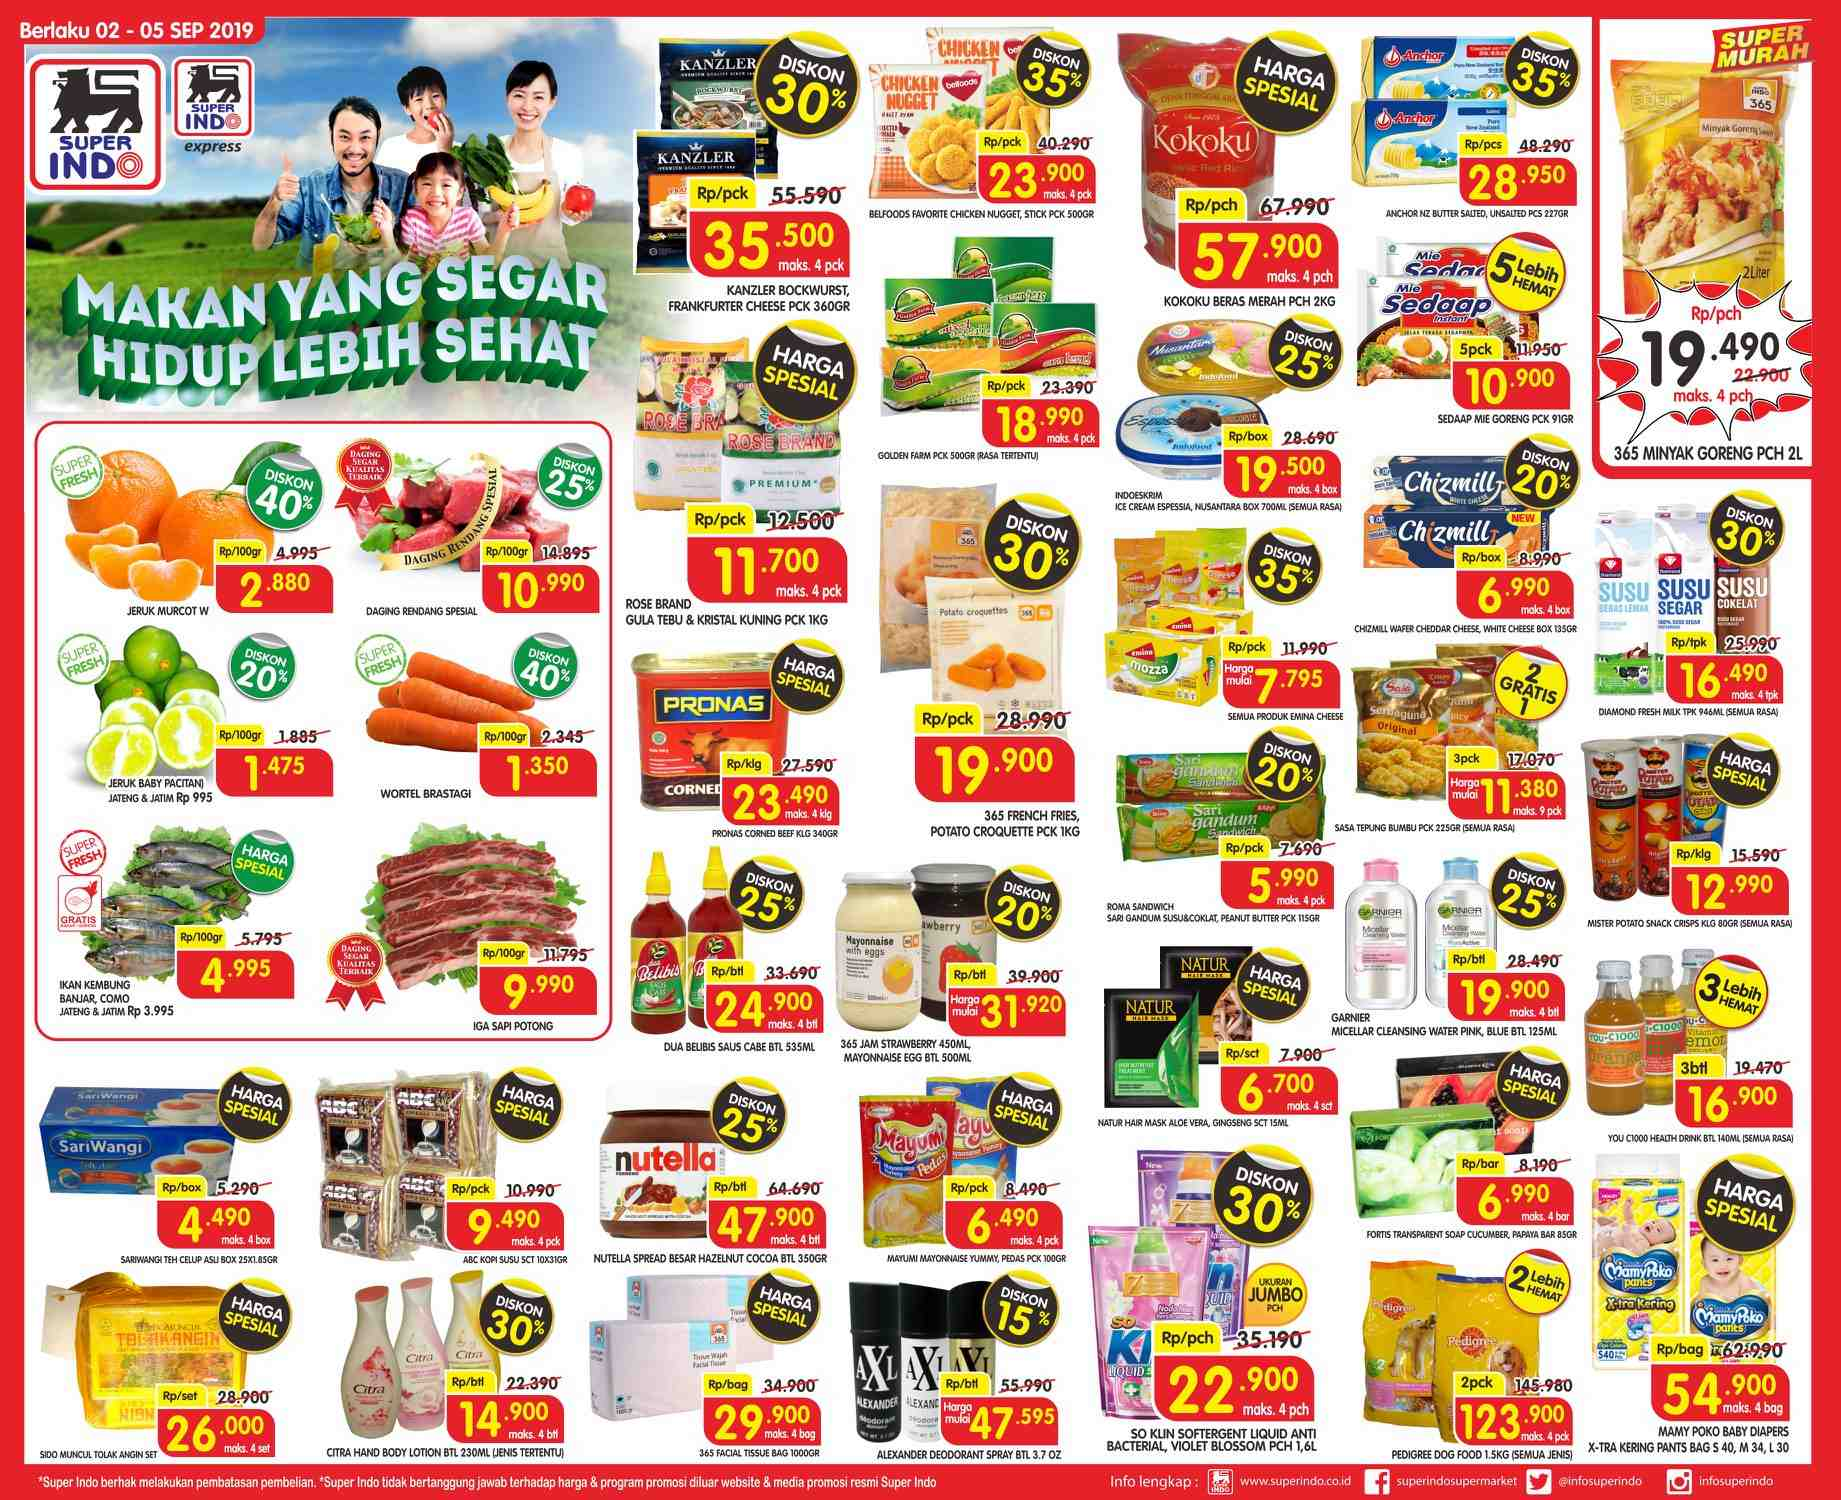 Diskon Katalog SuperIndo periode 02-05 September 2019